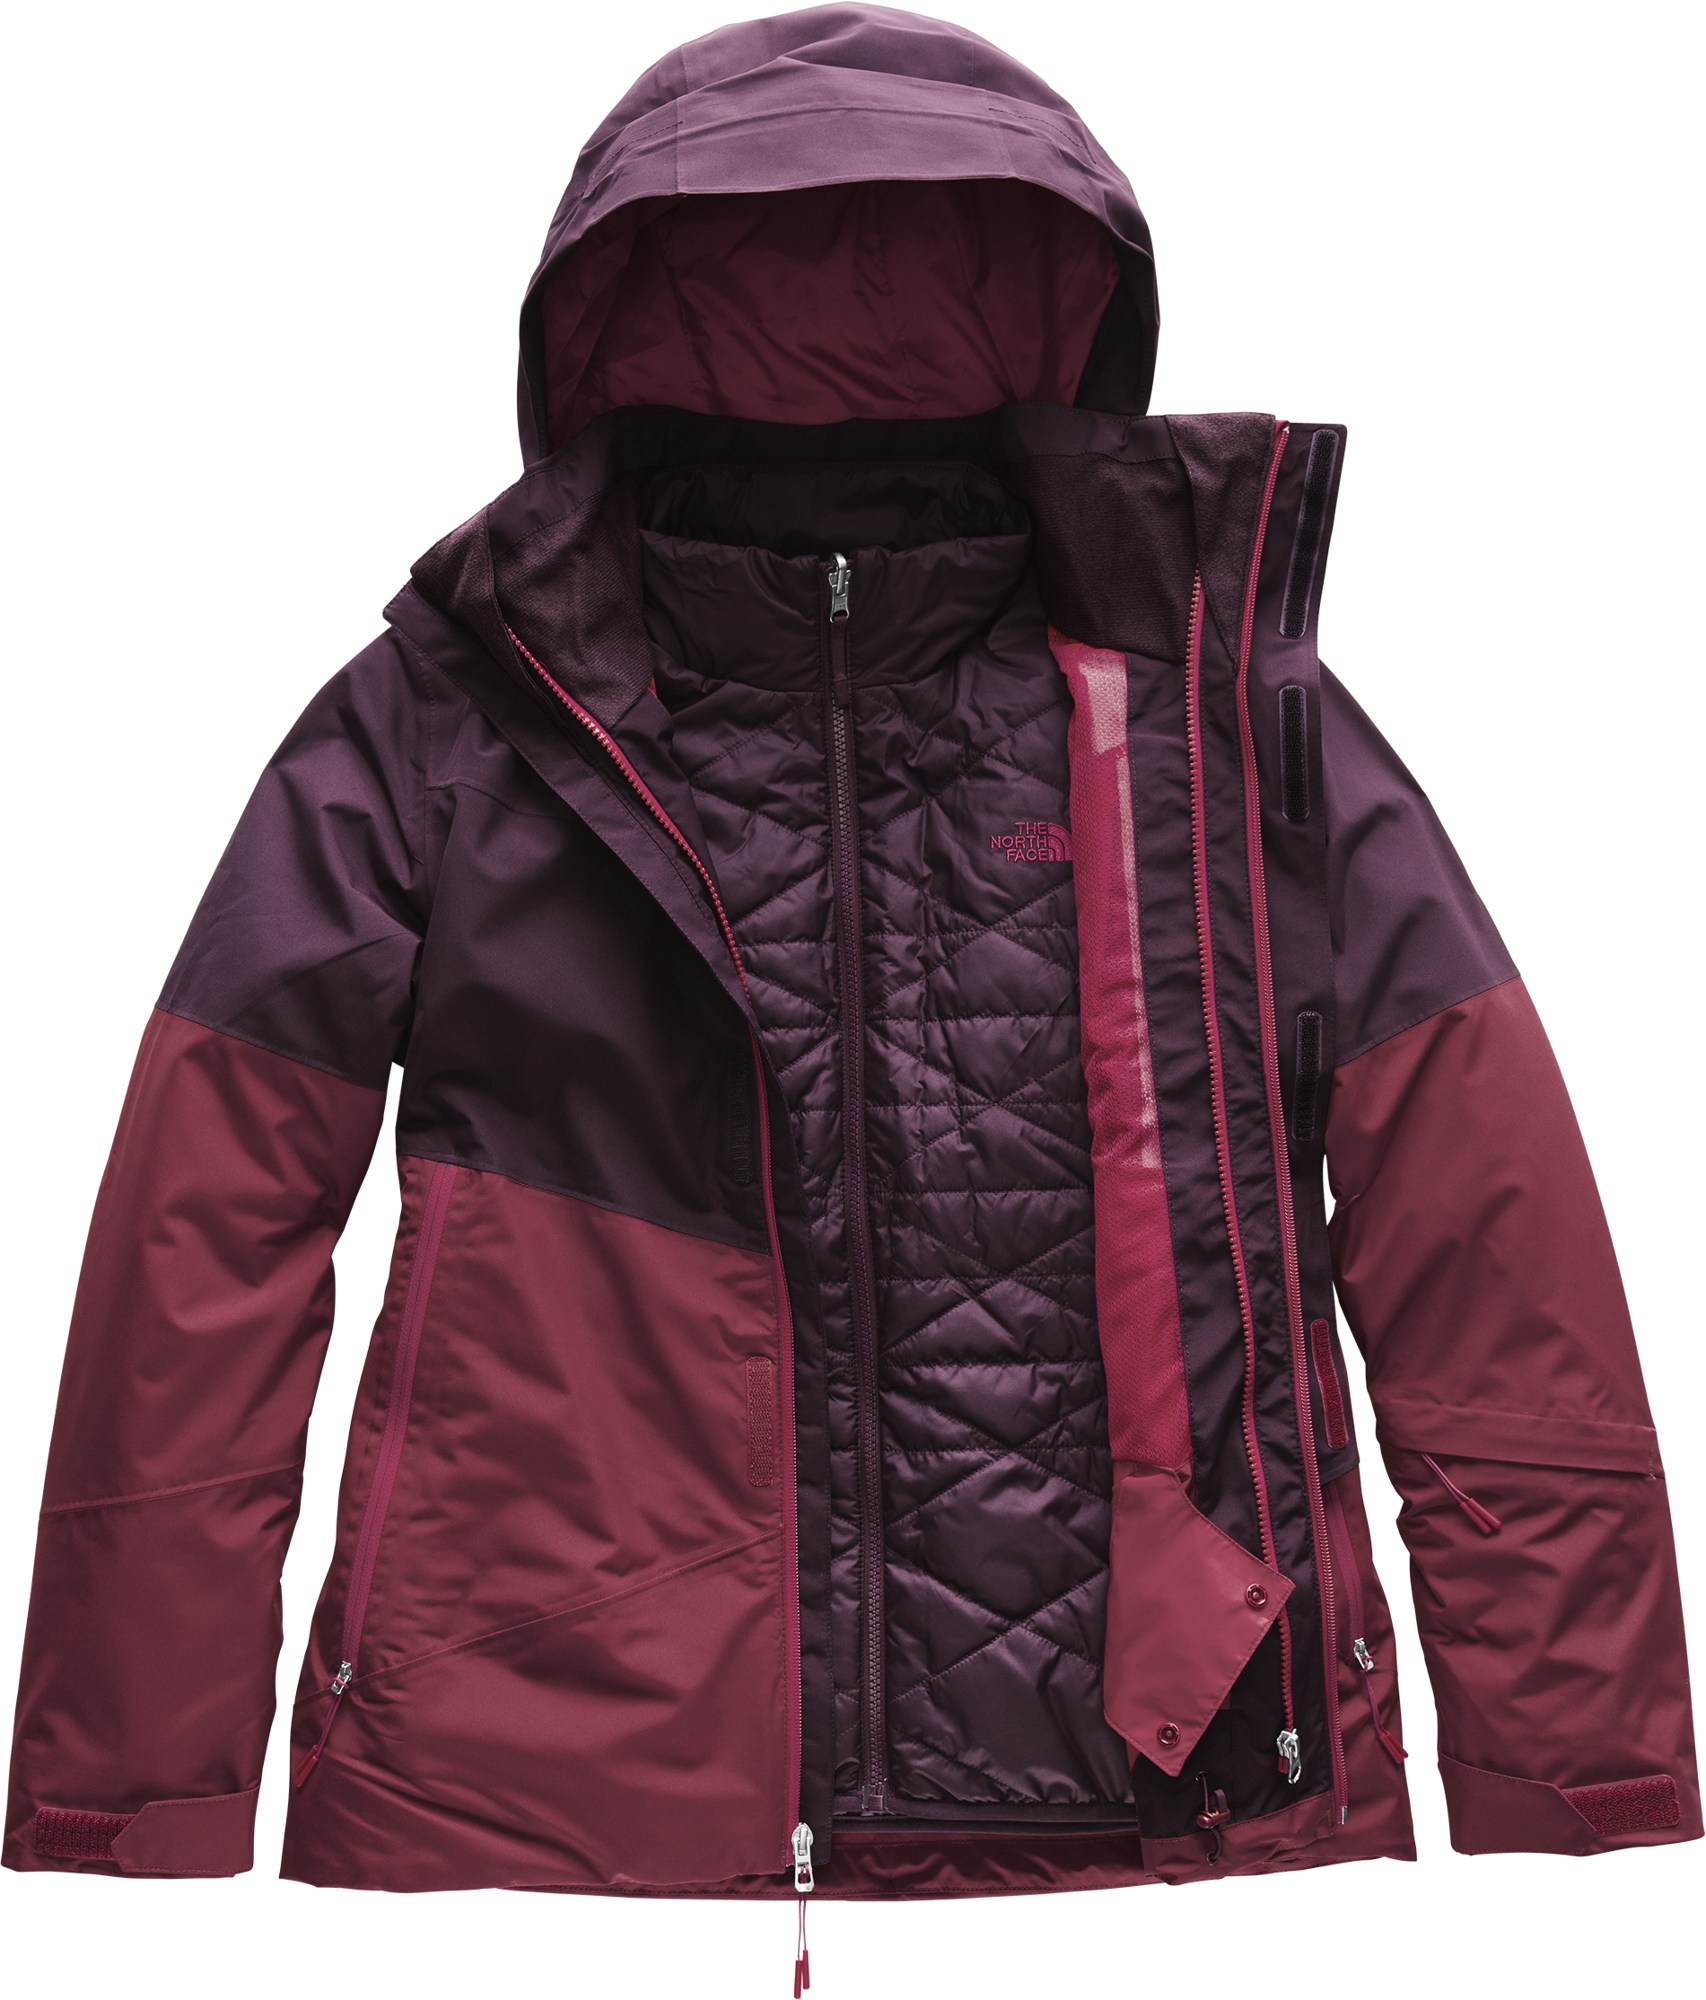 The North Face Garner Triclimate 3-in-1 Jacket - Women's